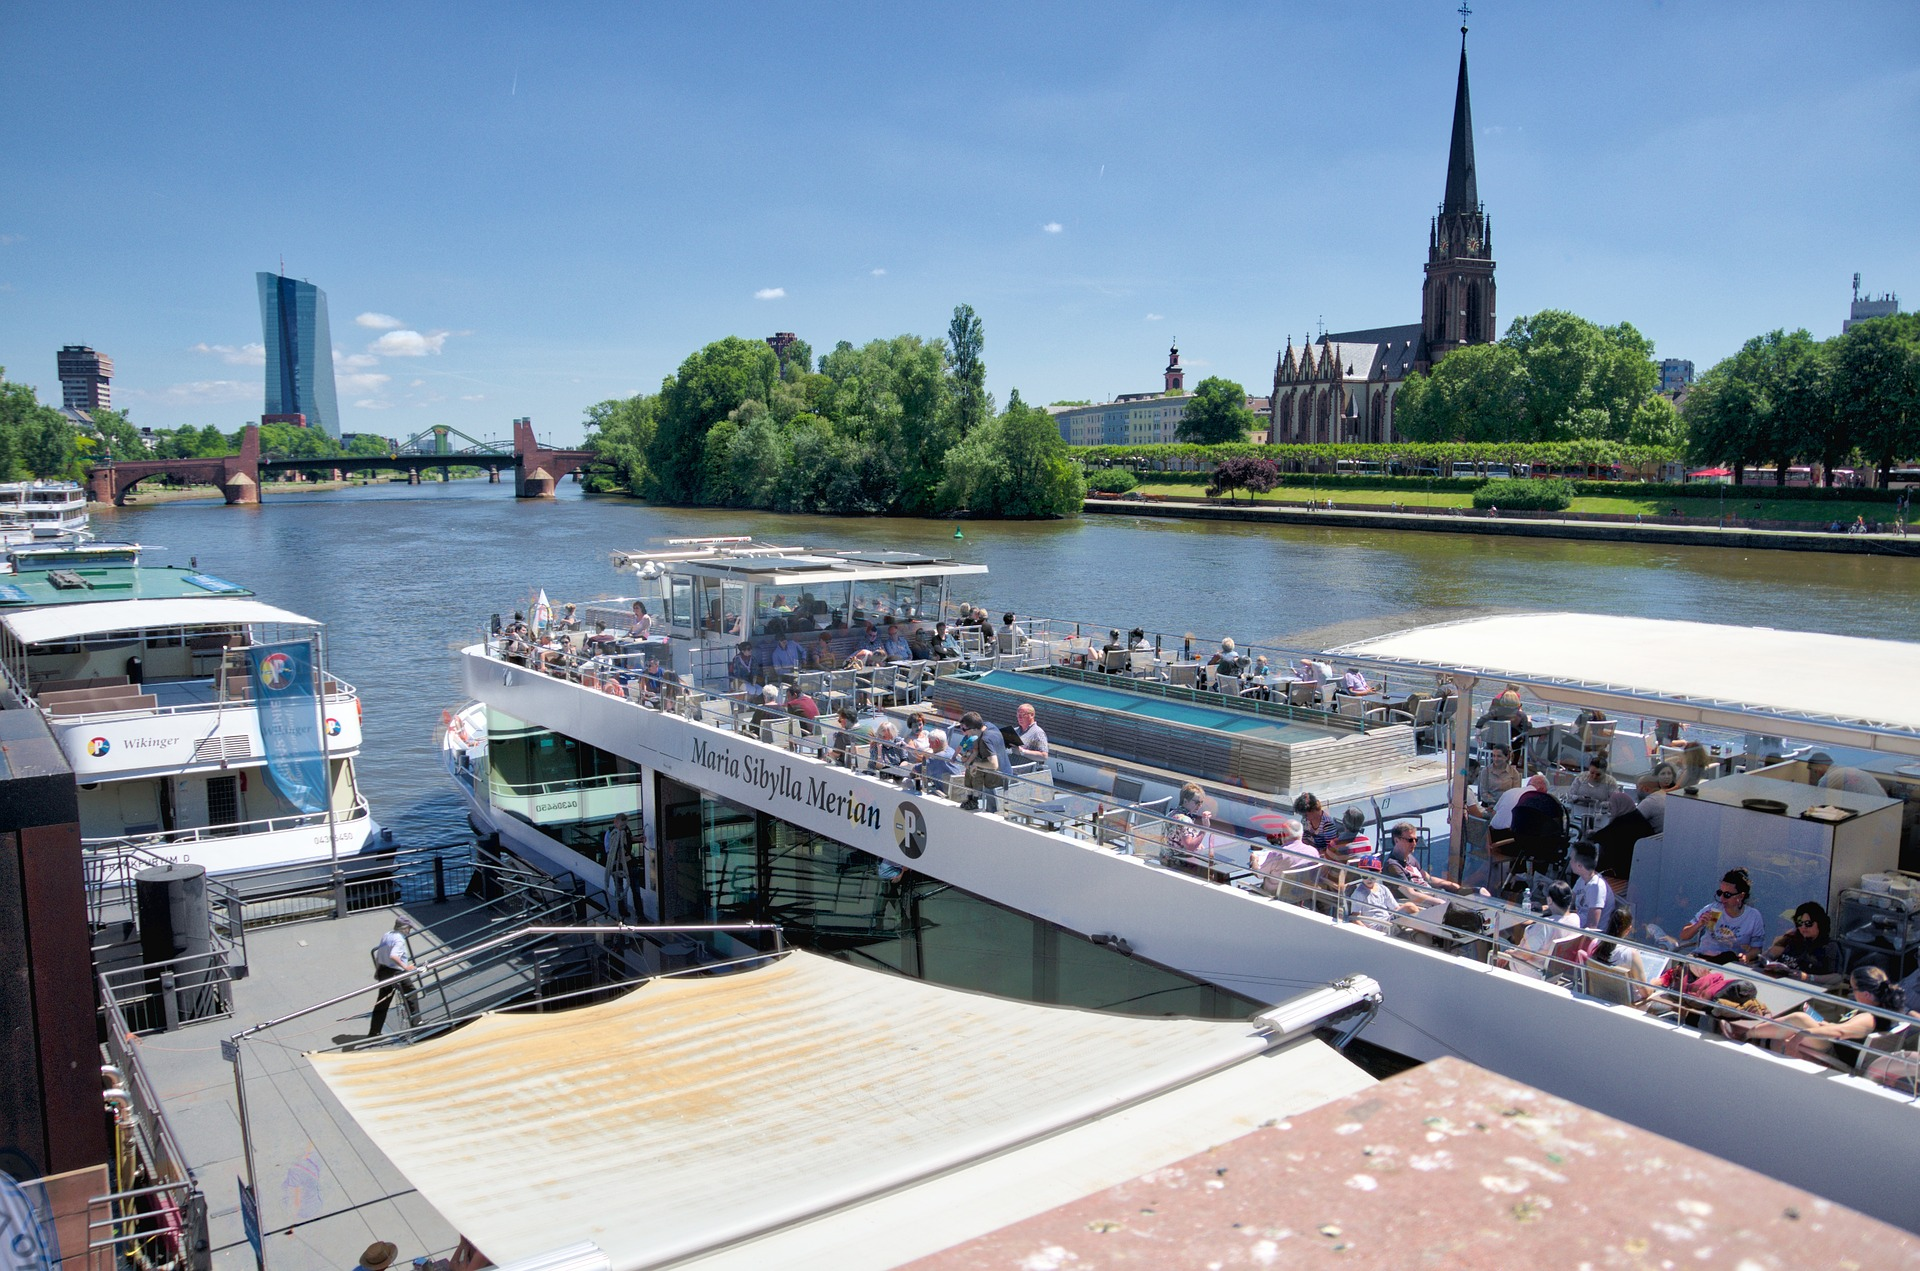 River boat with Dreikönigskirche church in background, Frankfurt, Germany